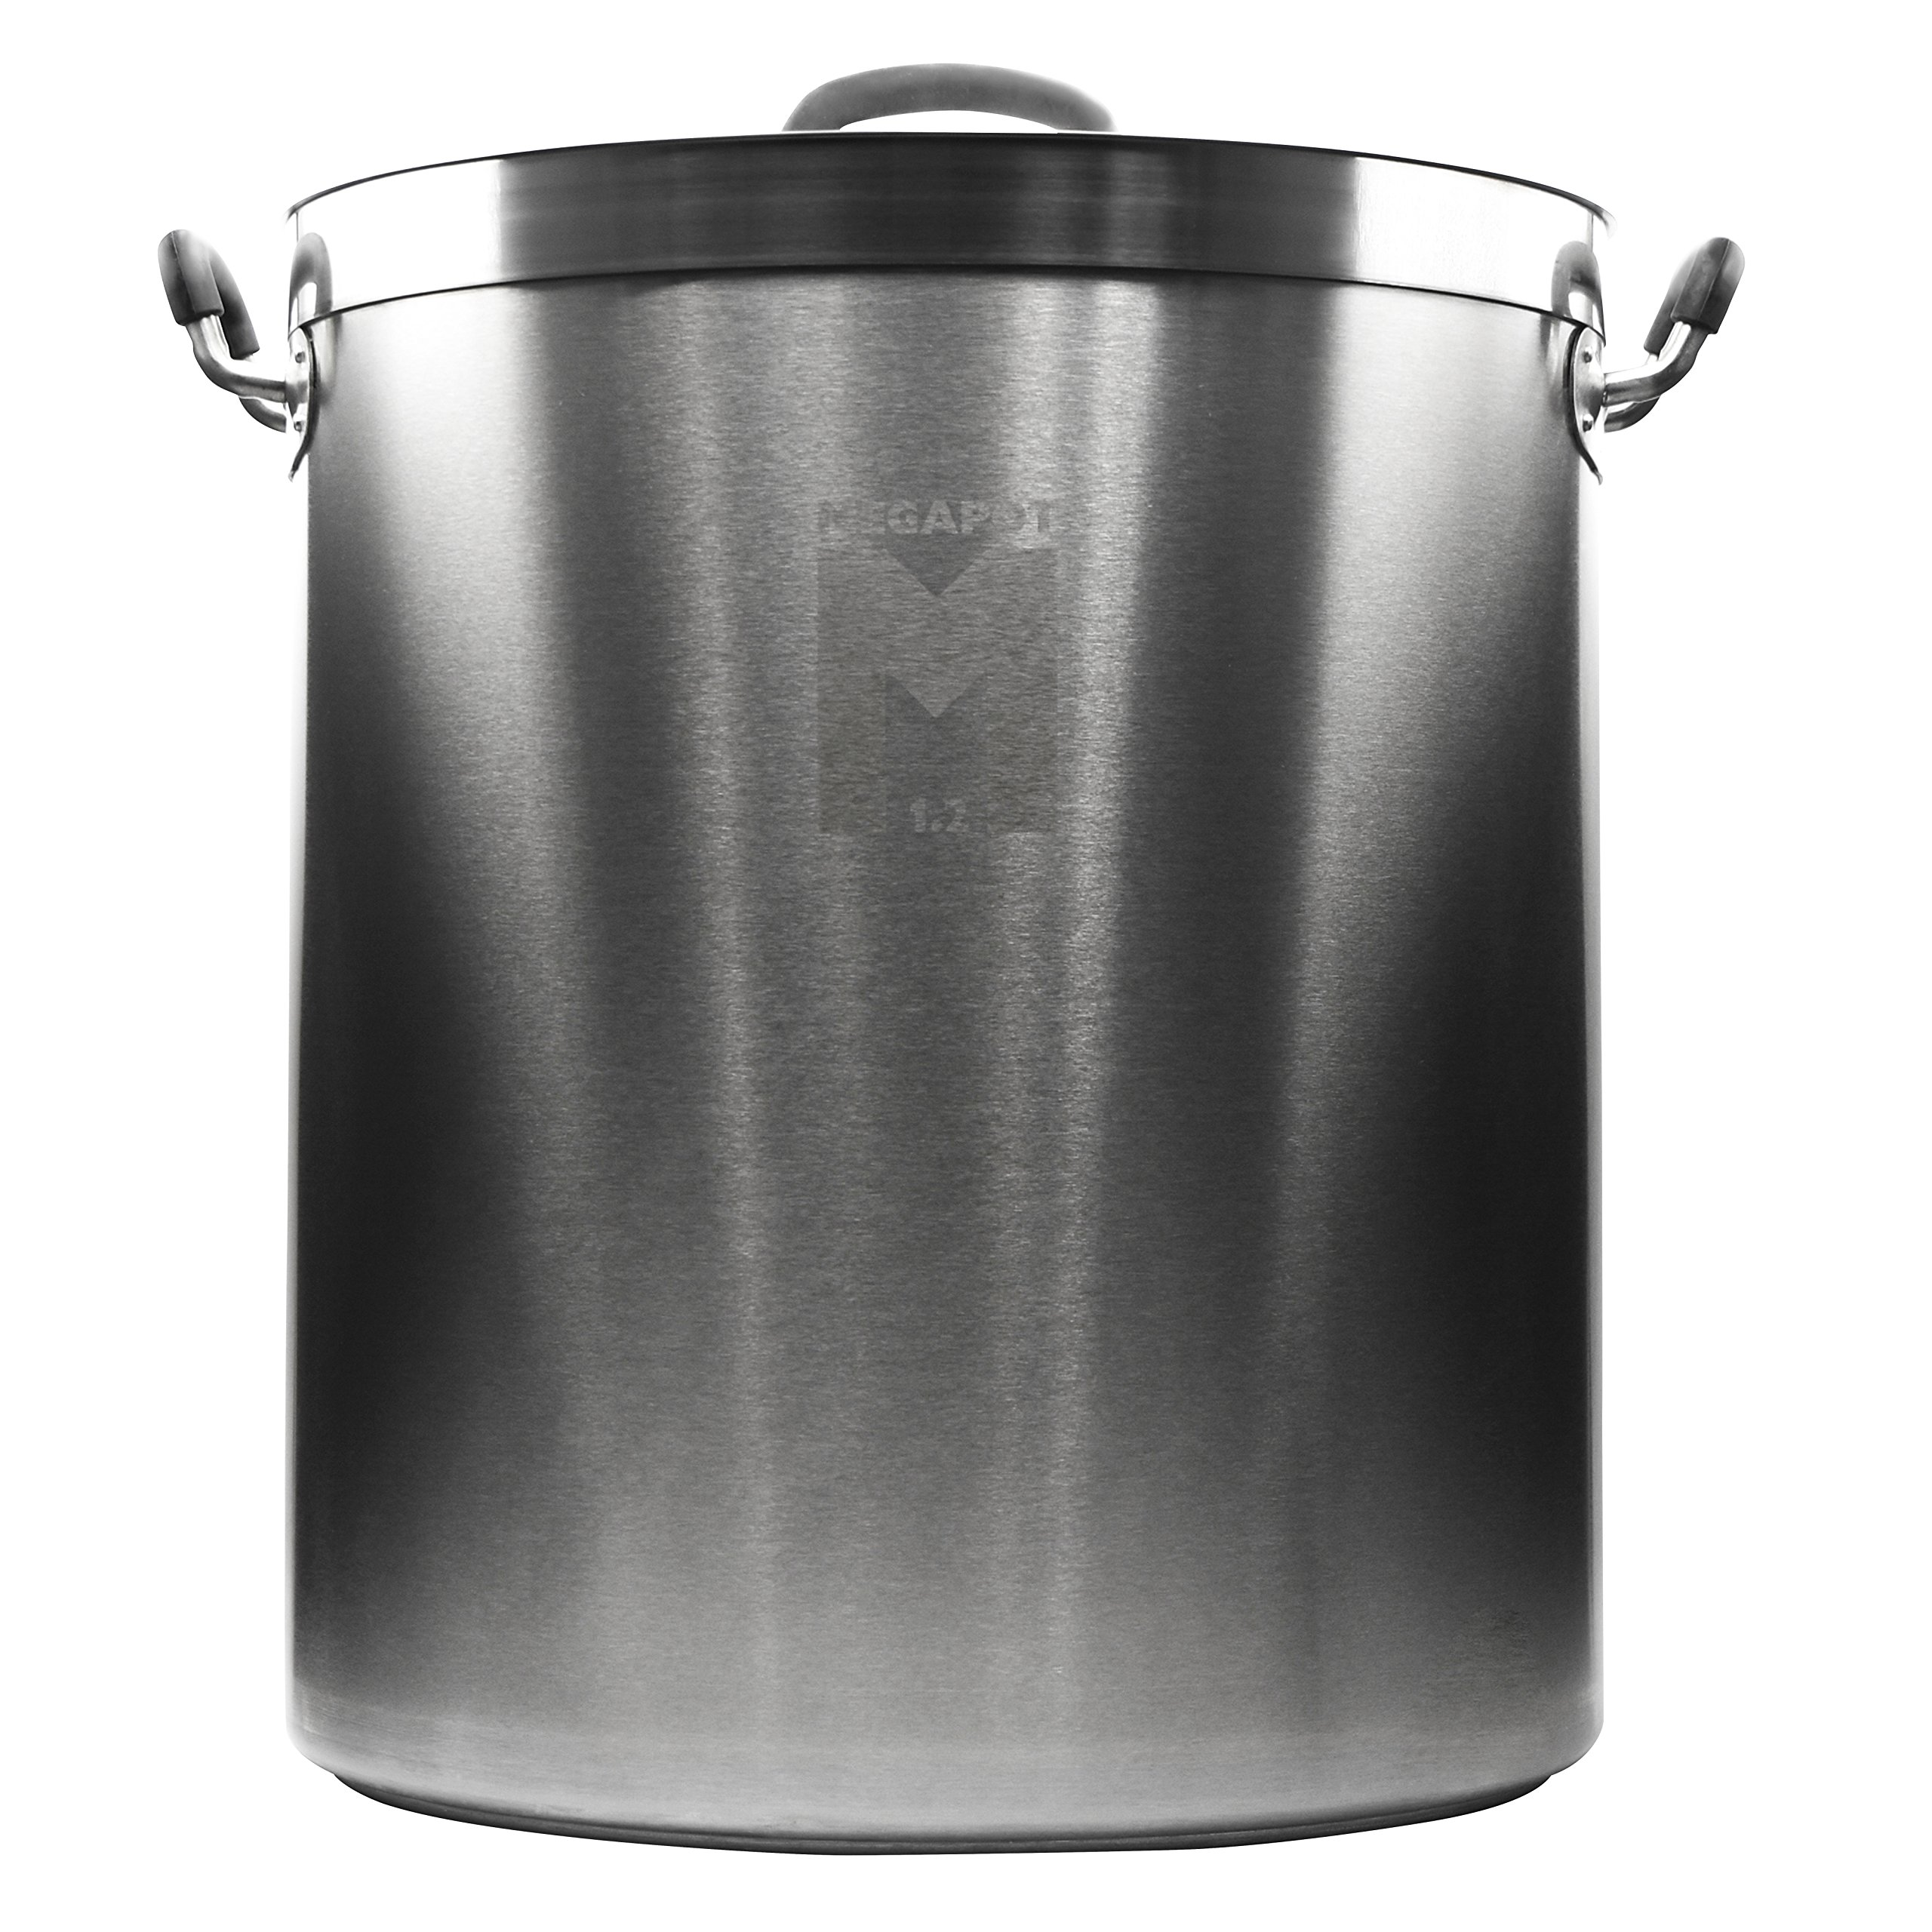 Northern Brewer - Megapot 1.2 Homebrew Stainless Steel Undrilled Brew Kettle Stock Pot For Beer Brewing (Plain Kettle, 15 Gallon/60 Quarts)